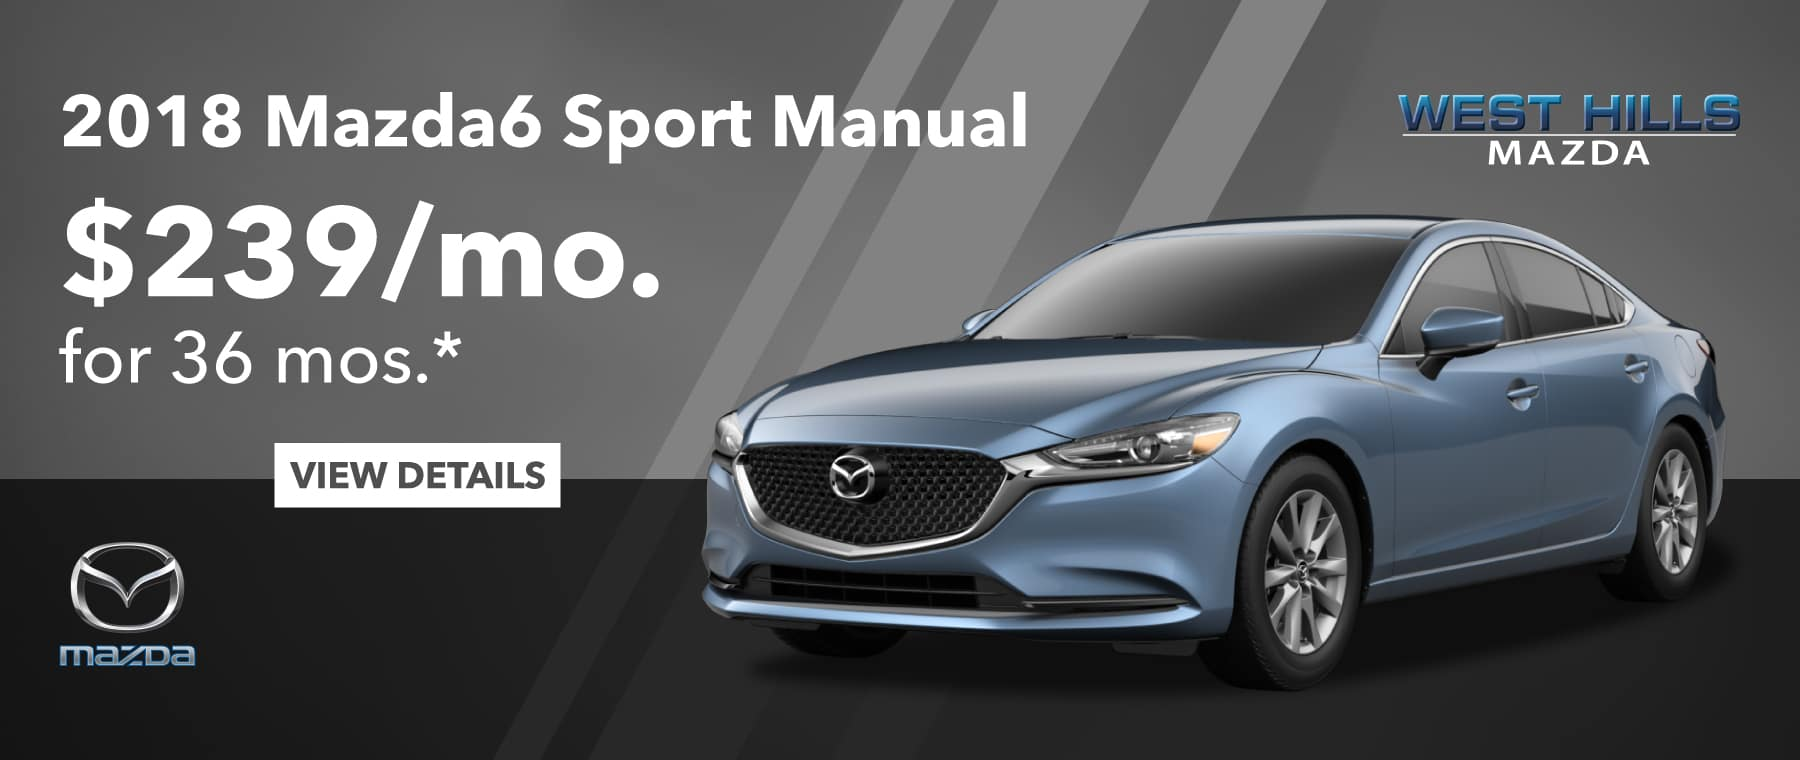 2018 Mazda6 Sport Manual  $239/mo. For 36 mos.*